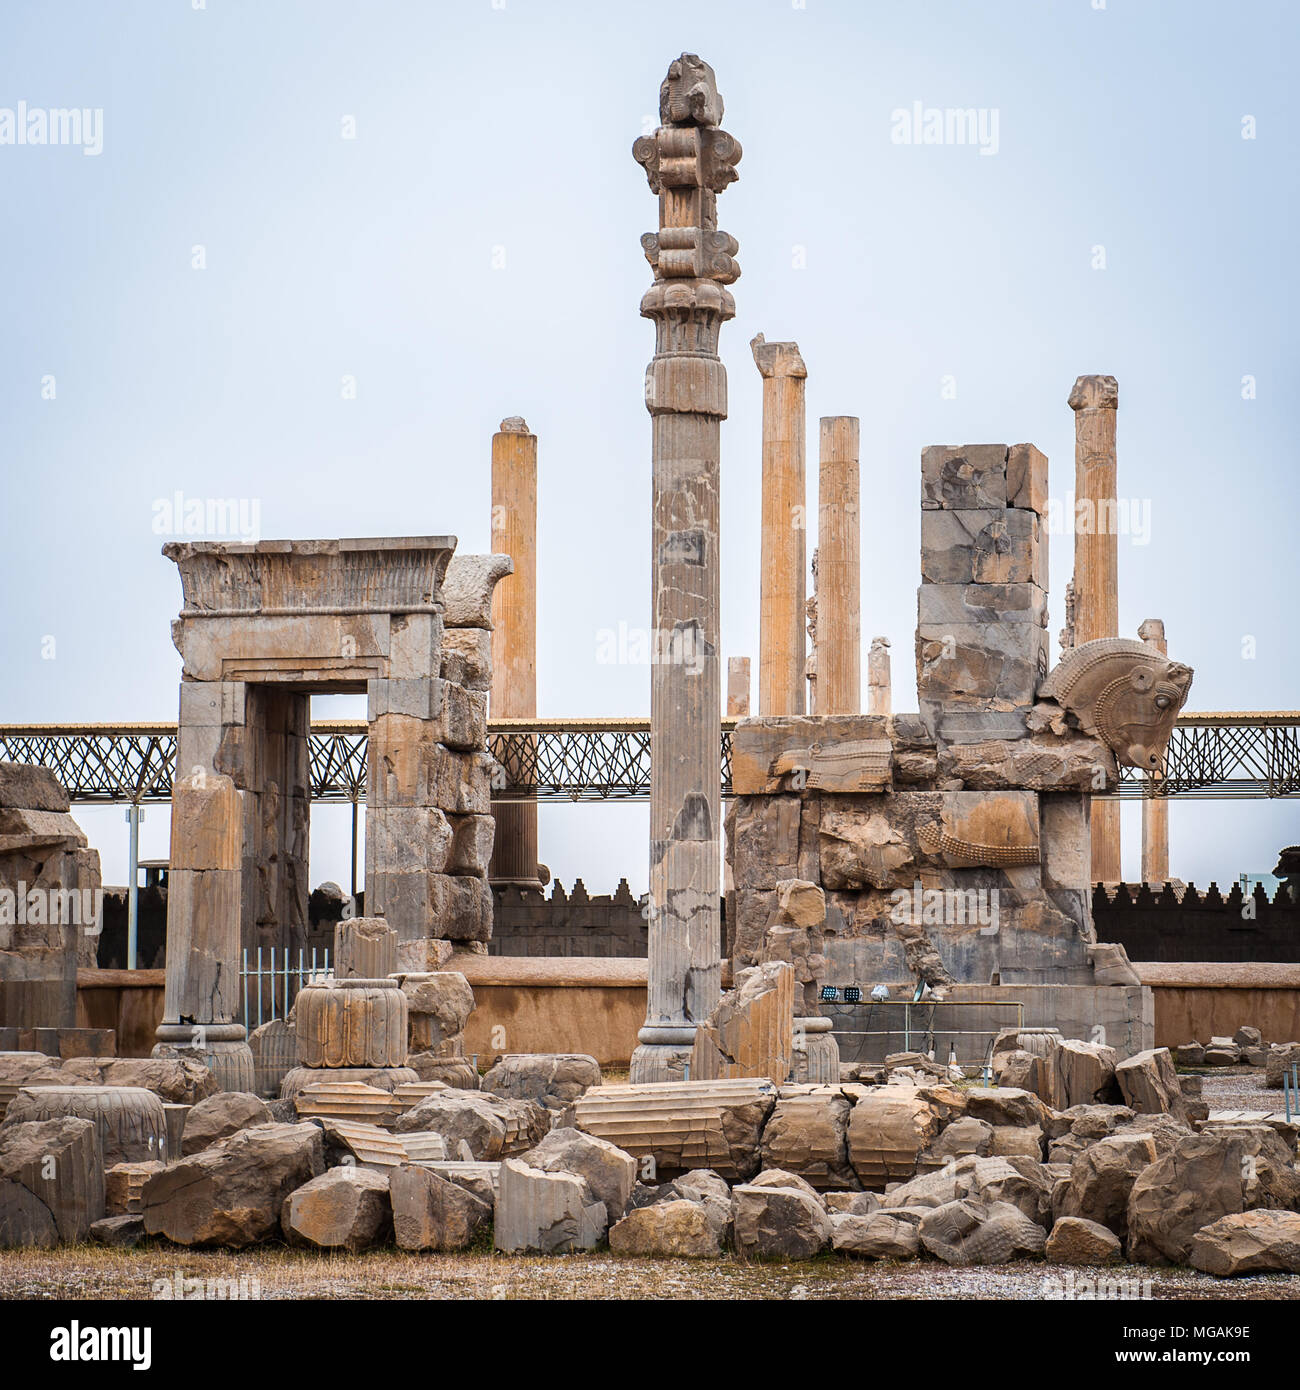 Hall Of The 100 Columns In The Ancient City Of Persepolis Iran Unesco World Heritage Site Stock Photo Alamy